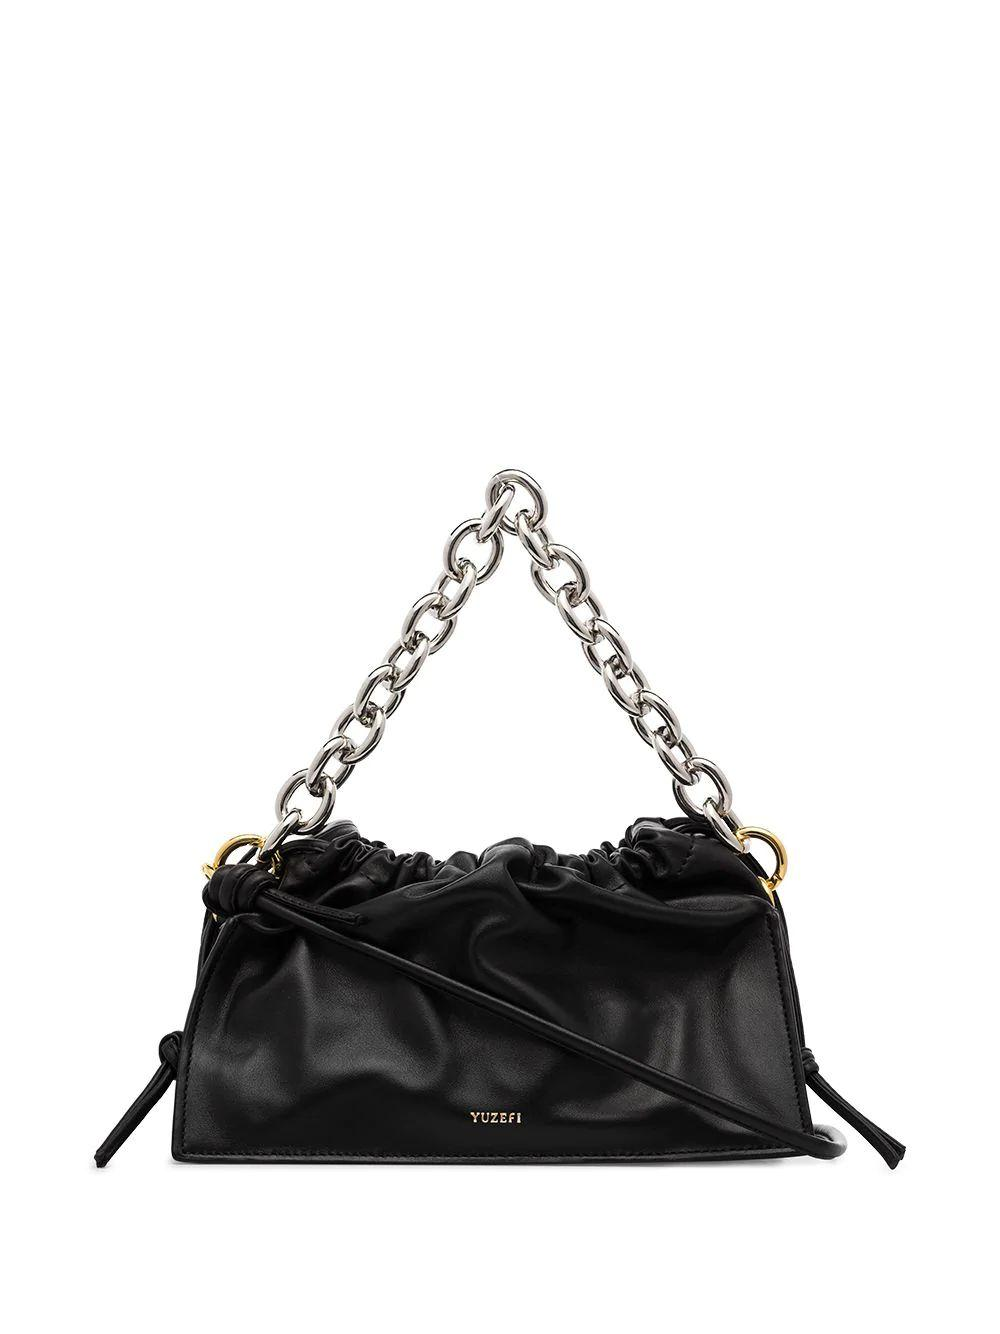 Bom Shoulder Bag With Chain Item # YUZPF20-BO-07